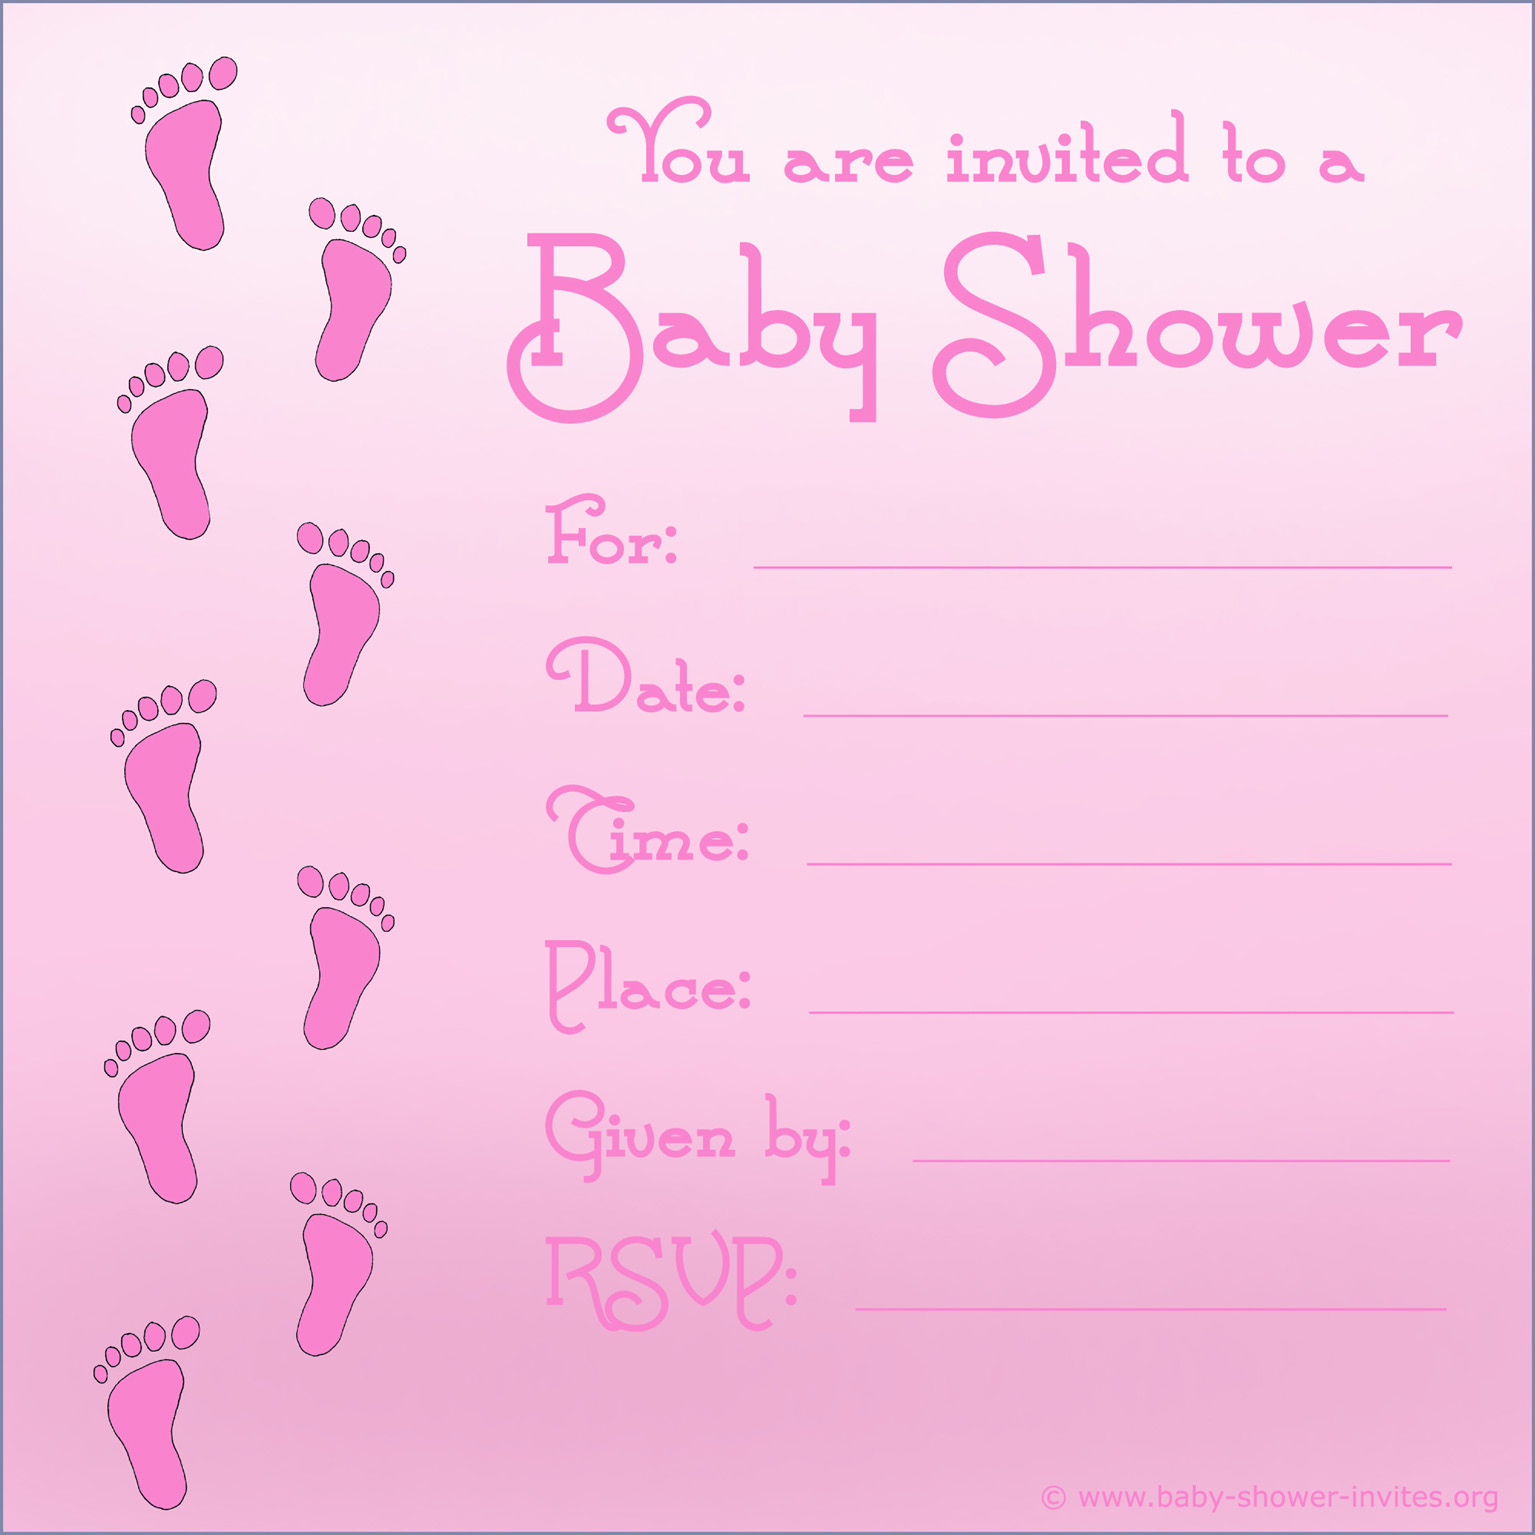 Glamorous Luxury Printable Baby Shower Cards | Poserforum inside Set Printable Baby Shower Cards